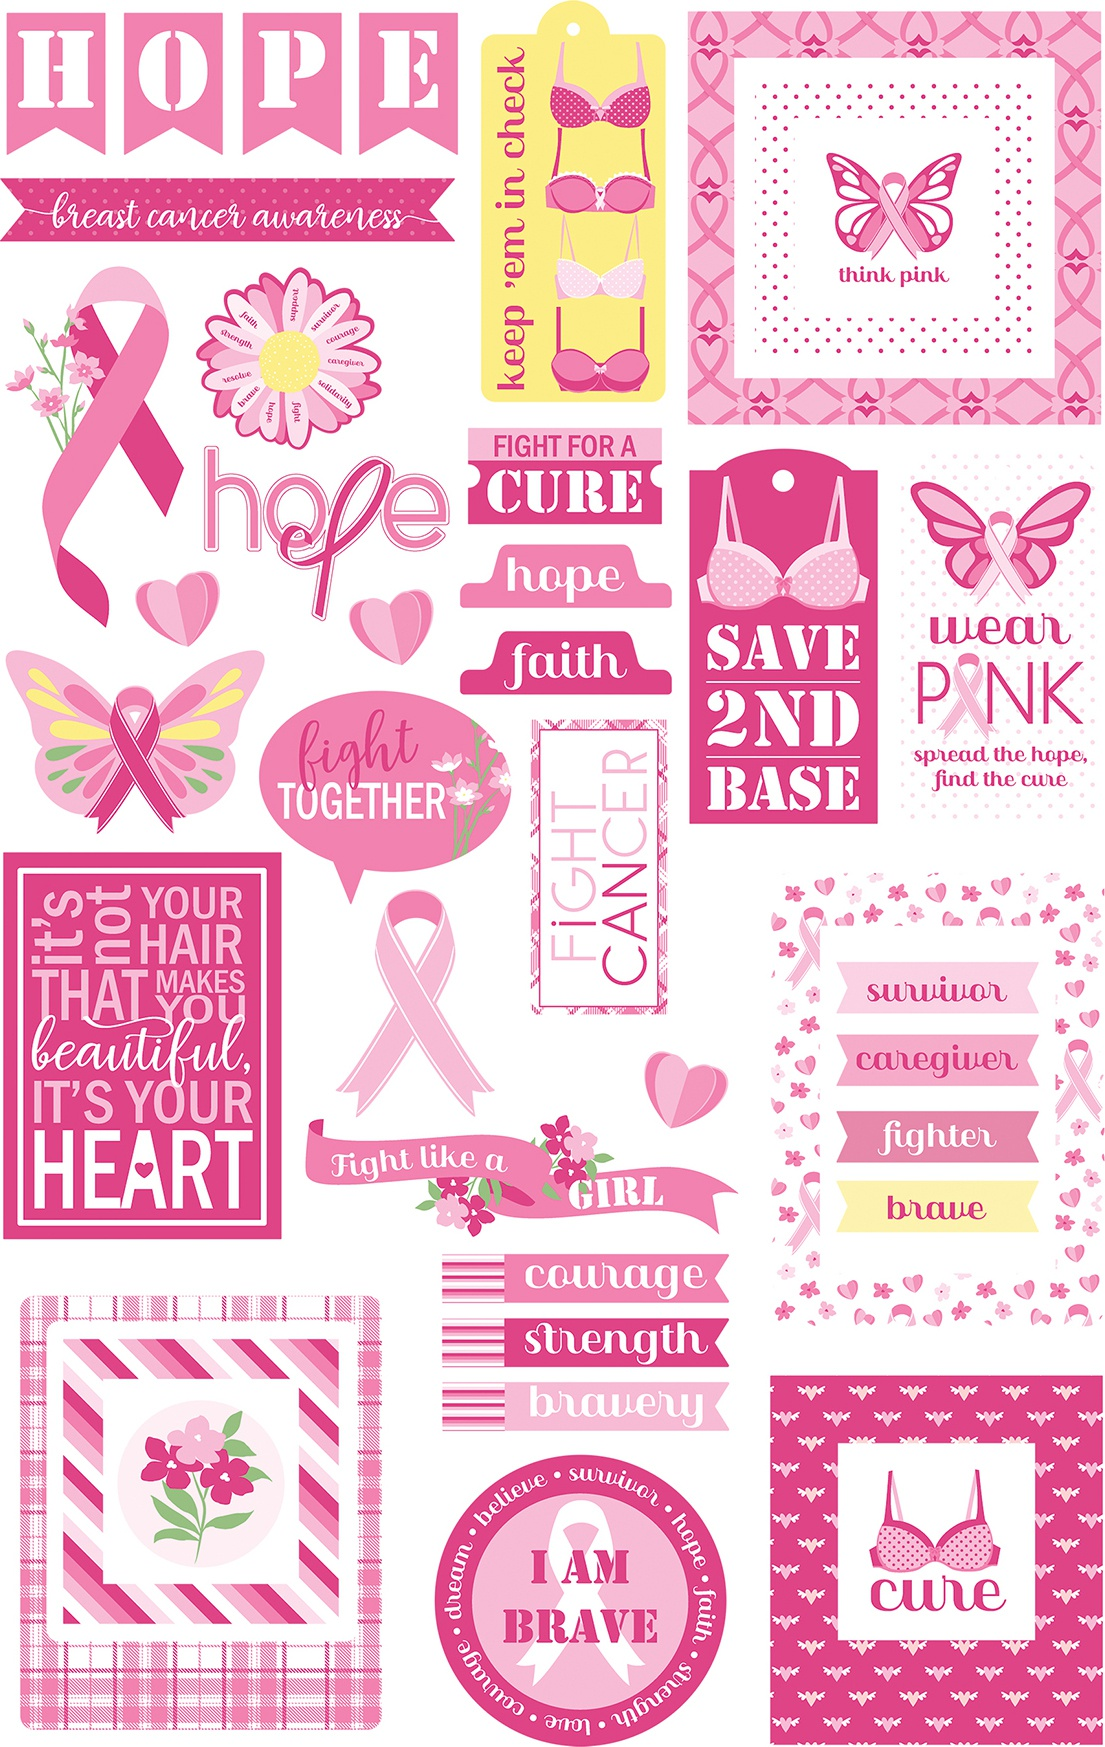 Colorplay - Operation Save 2nd Base - Cardstock Die Cuts